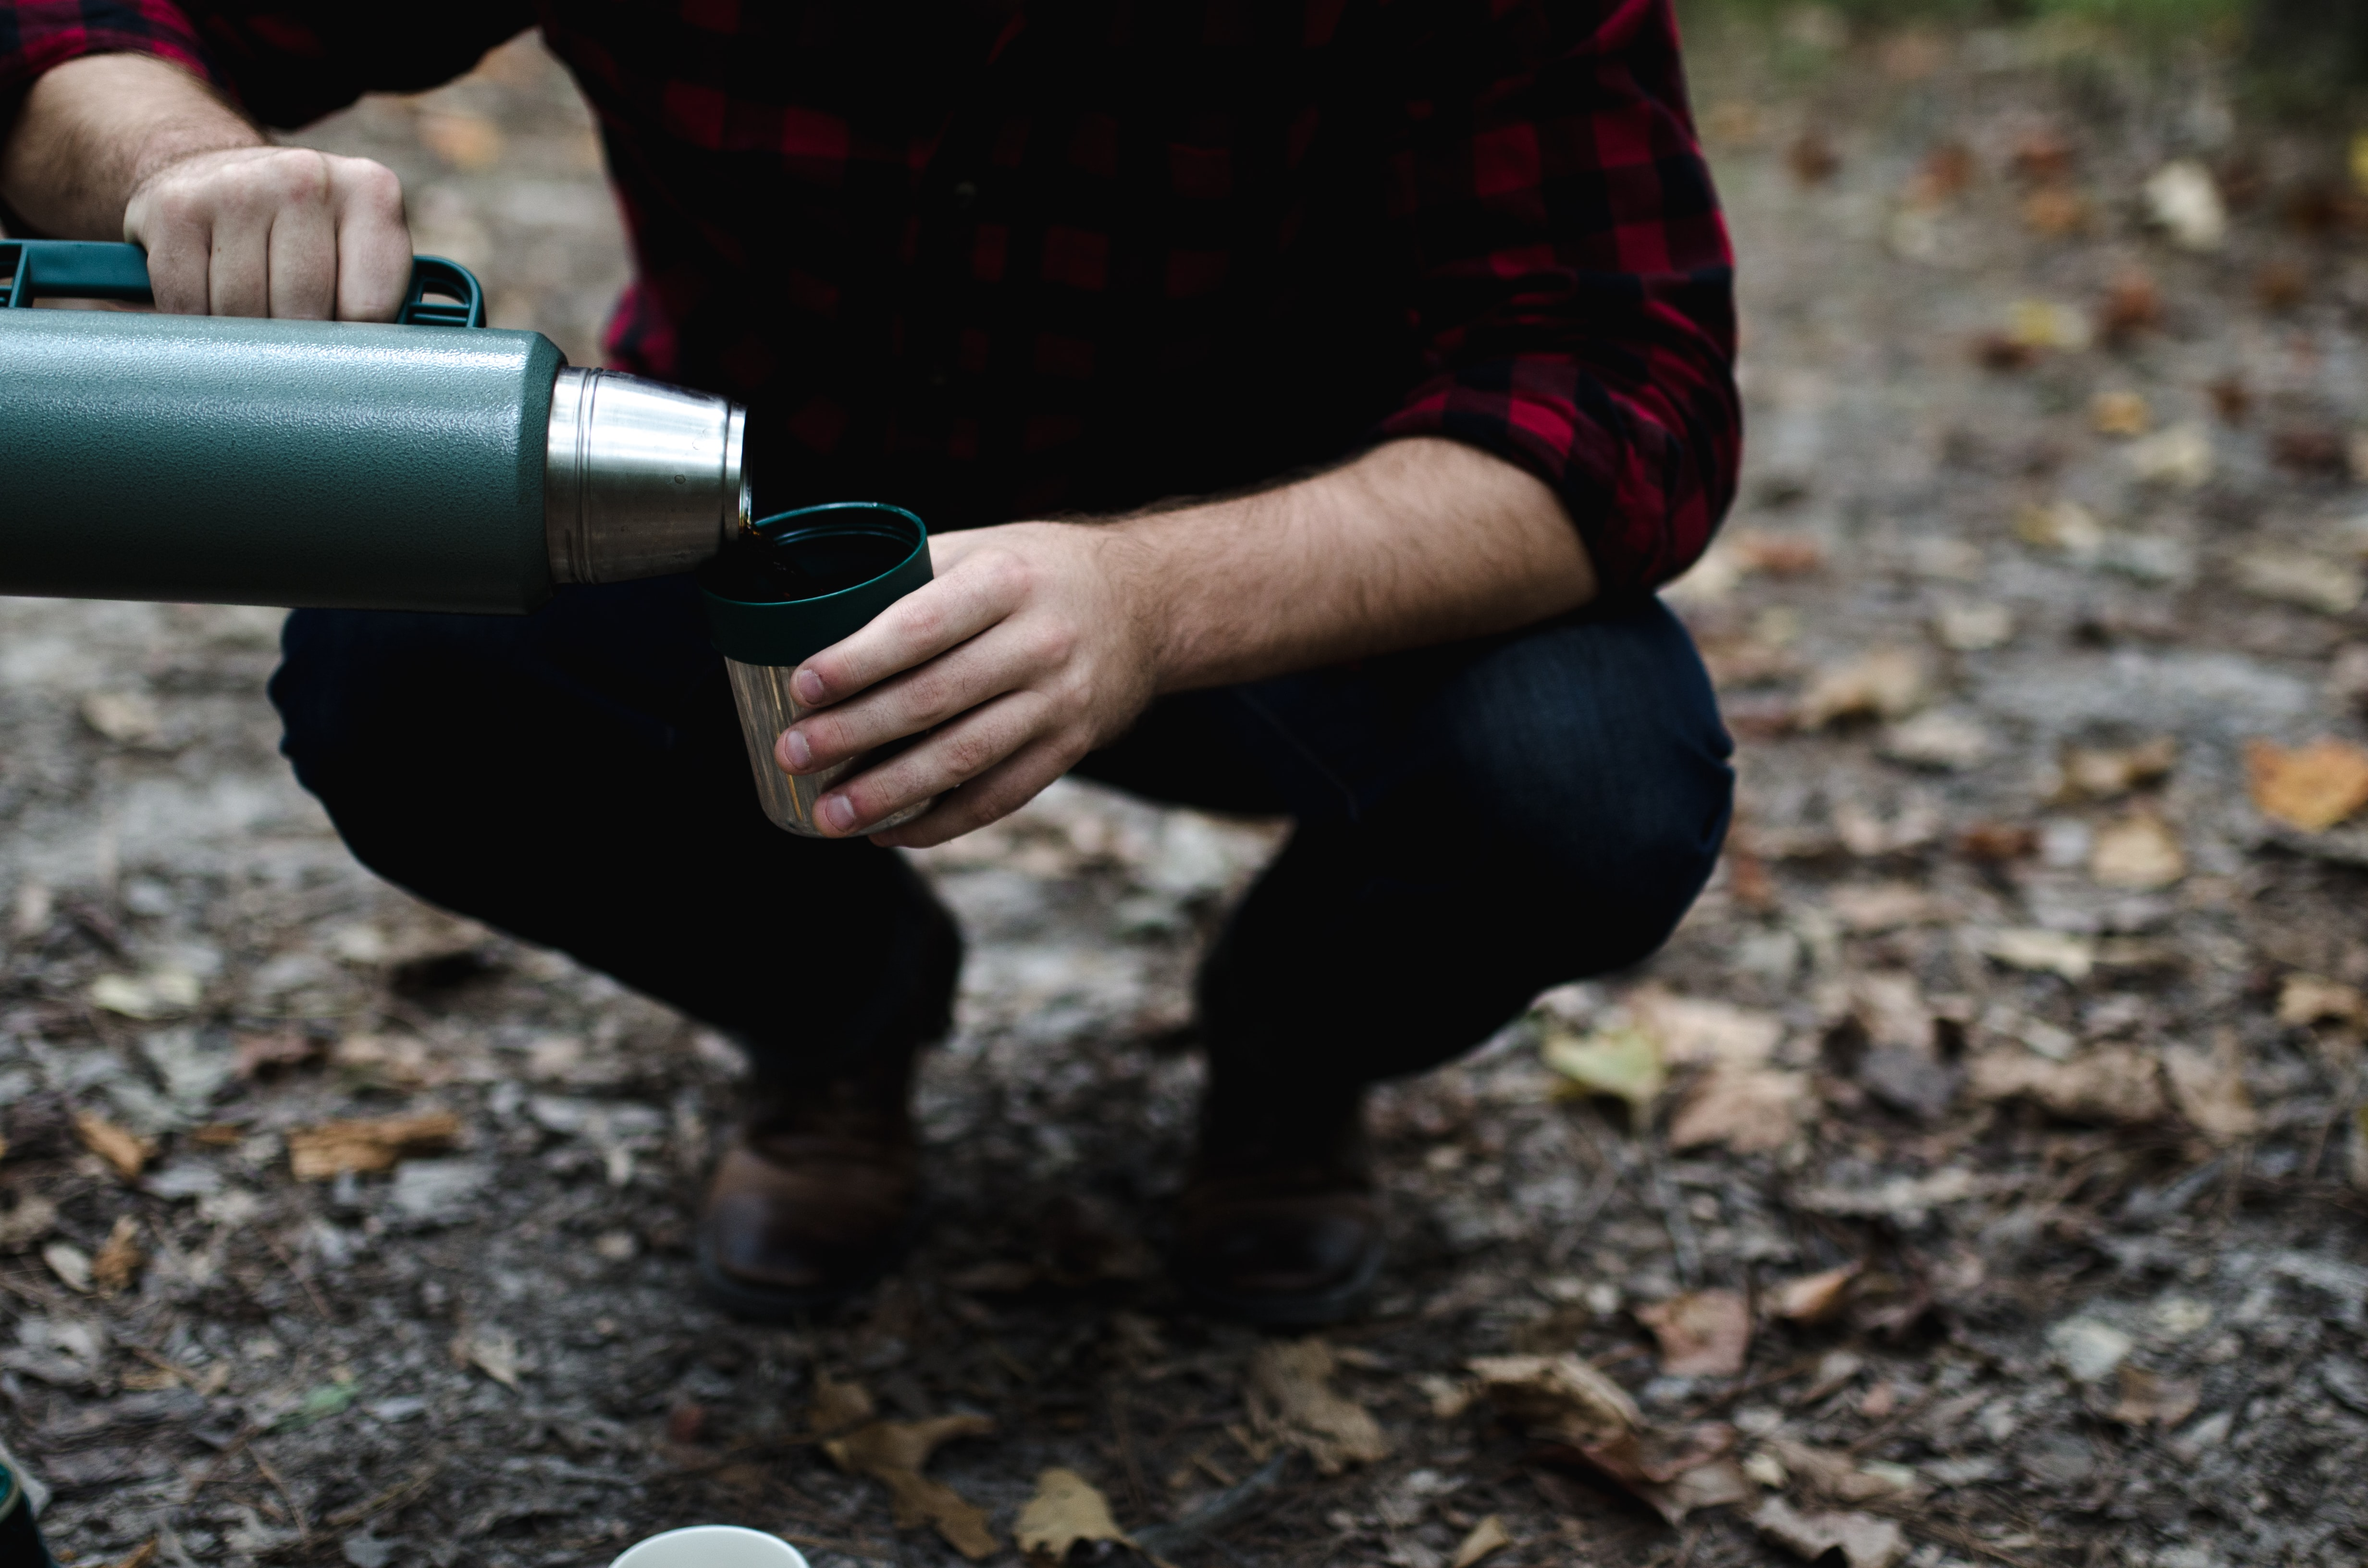 A man in plaid kneeling down and pouring drink from thermos into cap